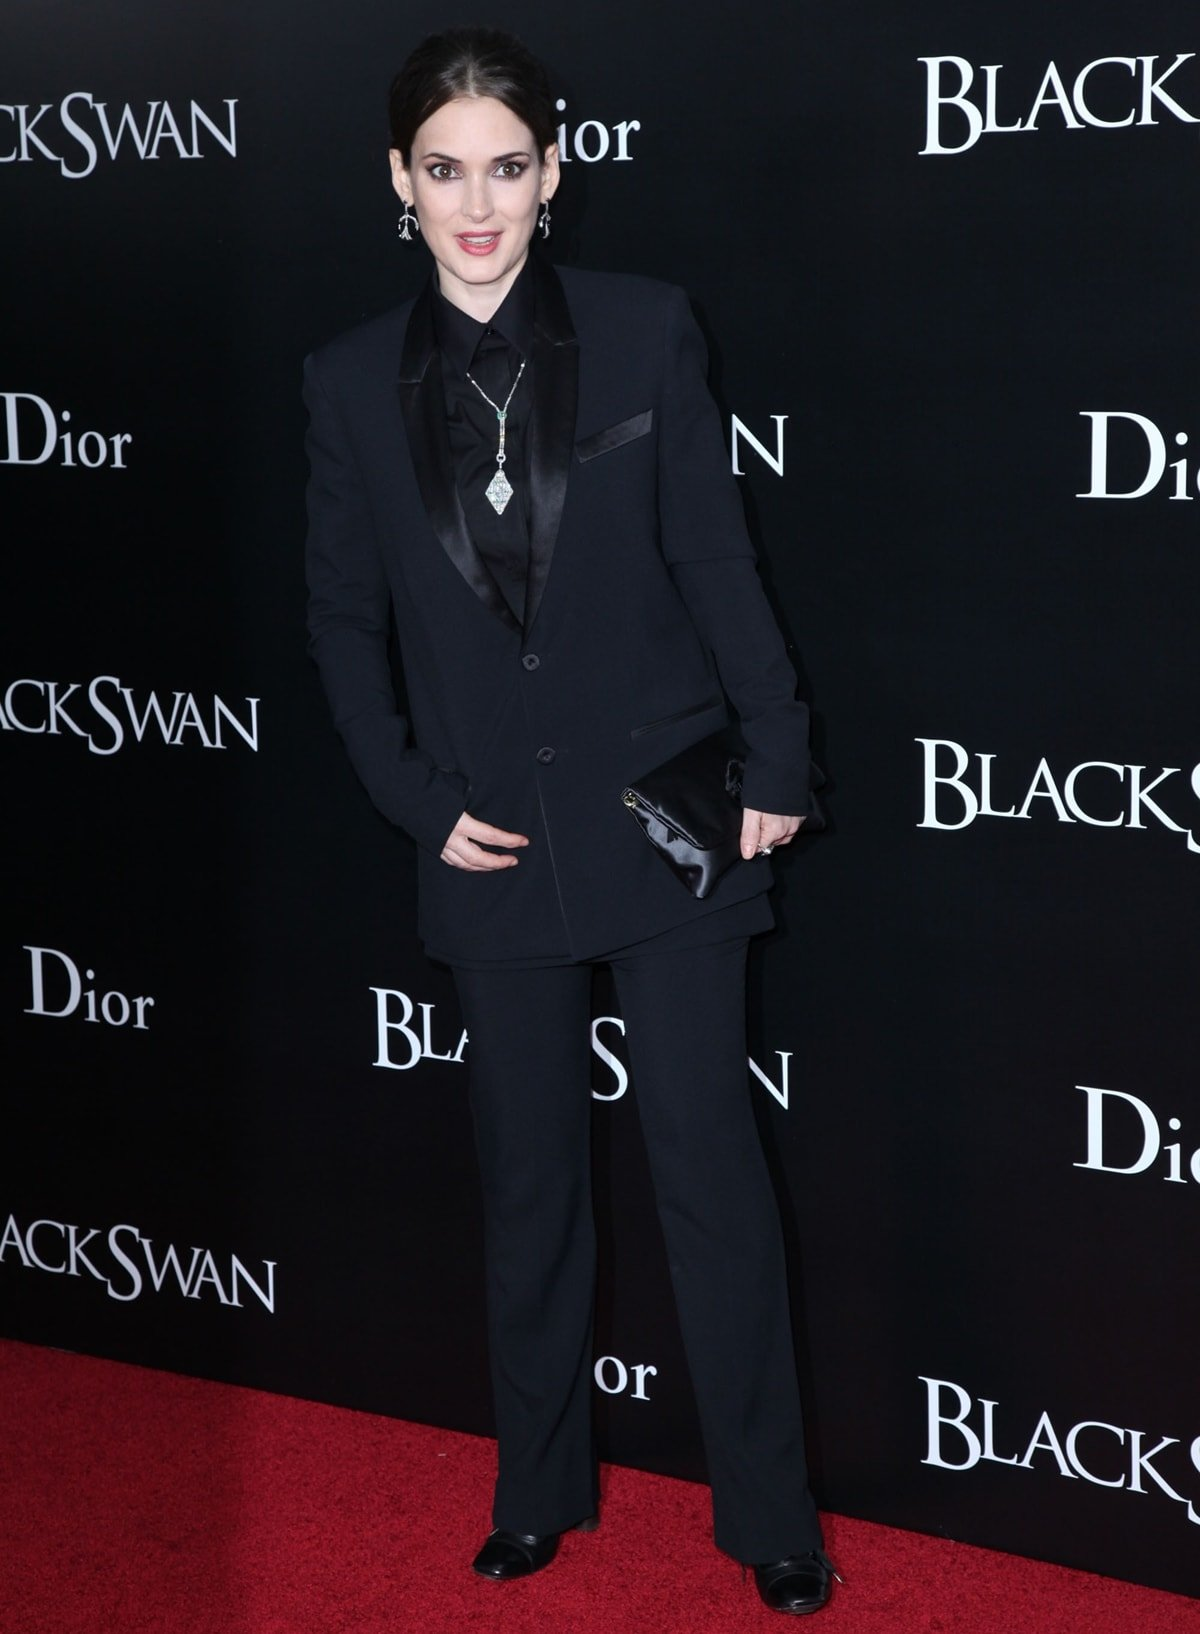 Winona Ryder styled a black Givenchy Resort 2011 suit with Stephen Russell jewelry and a Lanvin Ouloulette satin brooch clutch